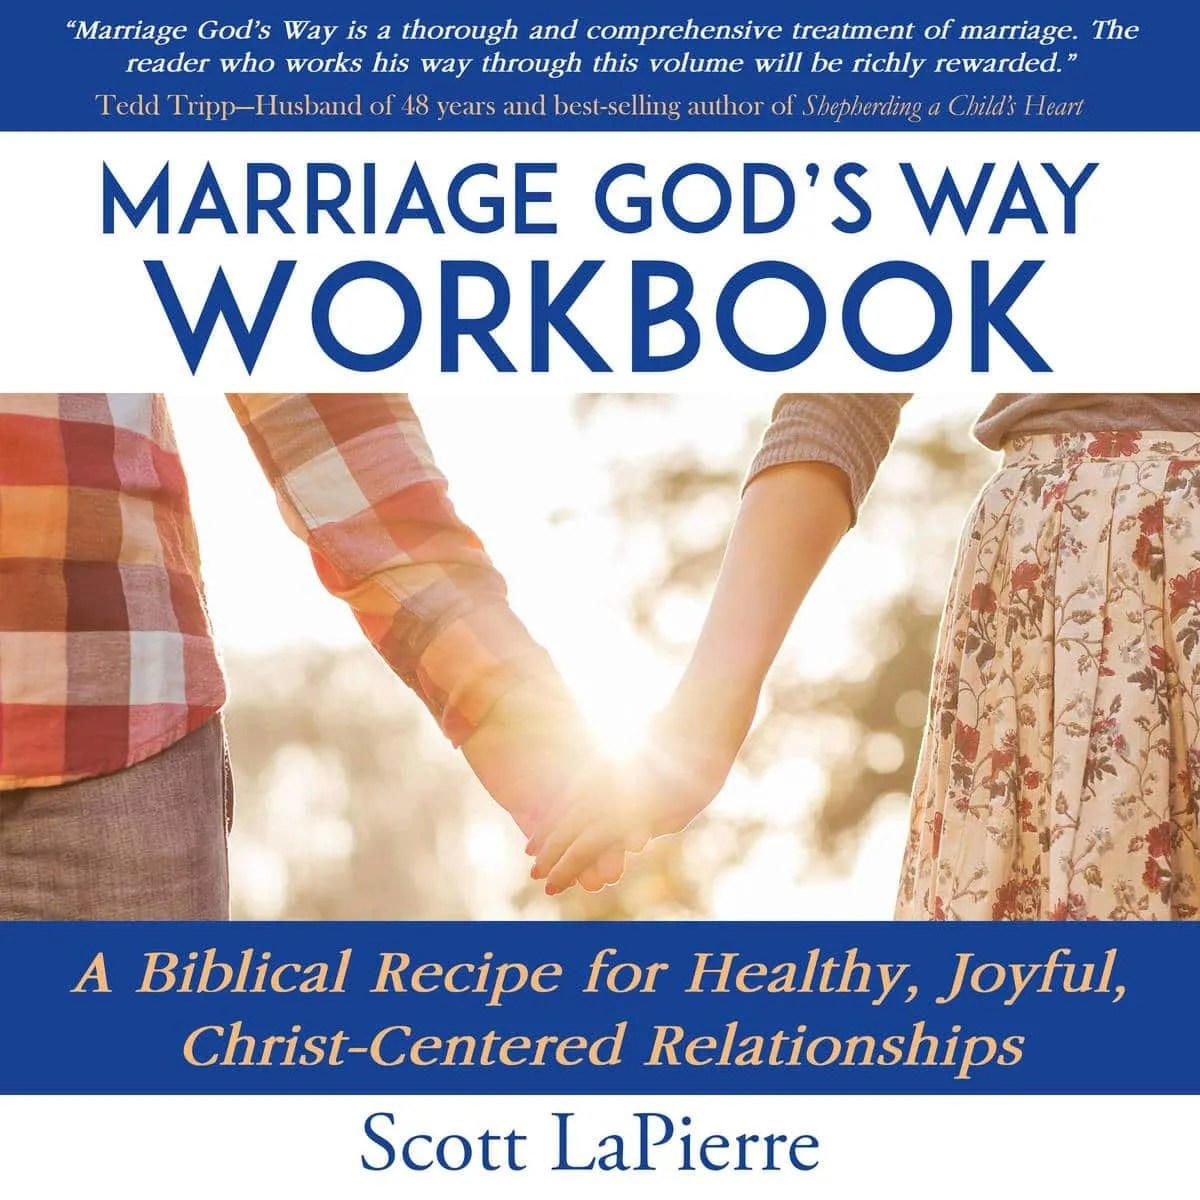 Audiobook for the Marriage God's Way Workbook